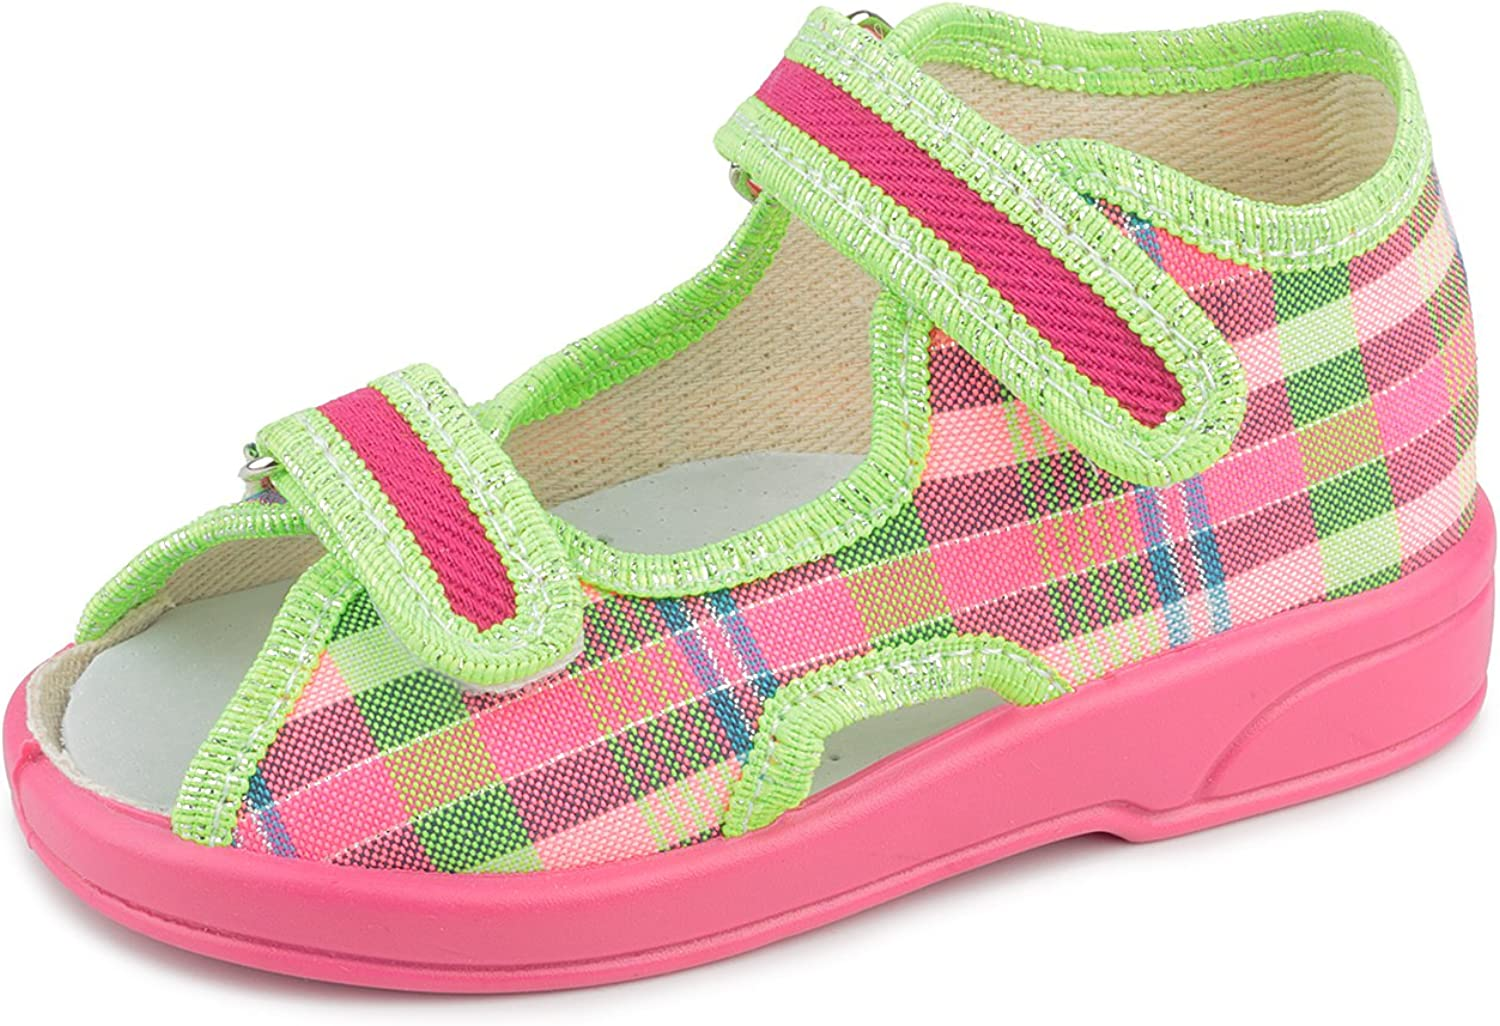 Zetpol Oliwia 2083 Pink Green Glow Checkerd Hook-and-Loop Toddler Girls' Natural Canvas Sandal